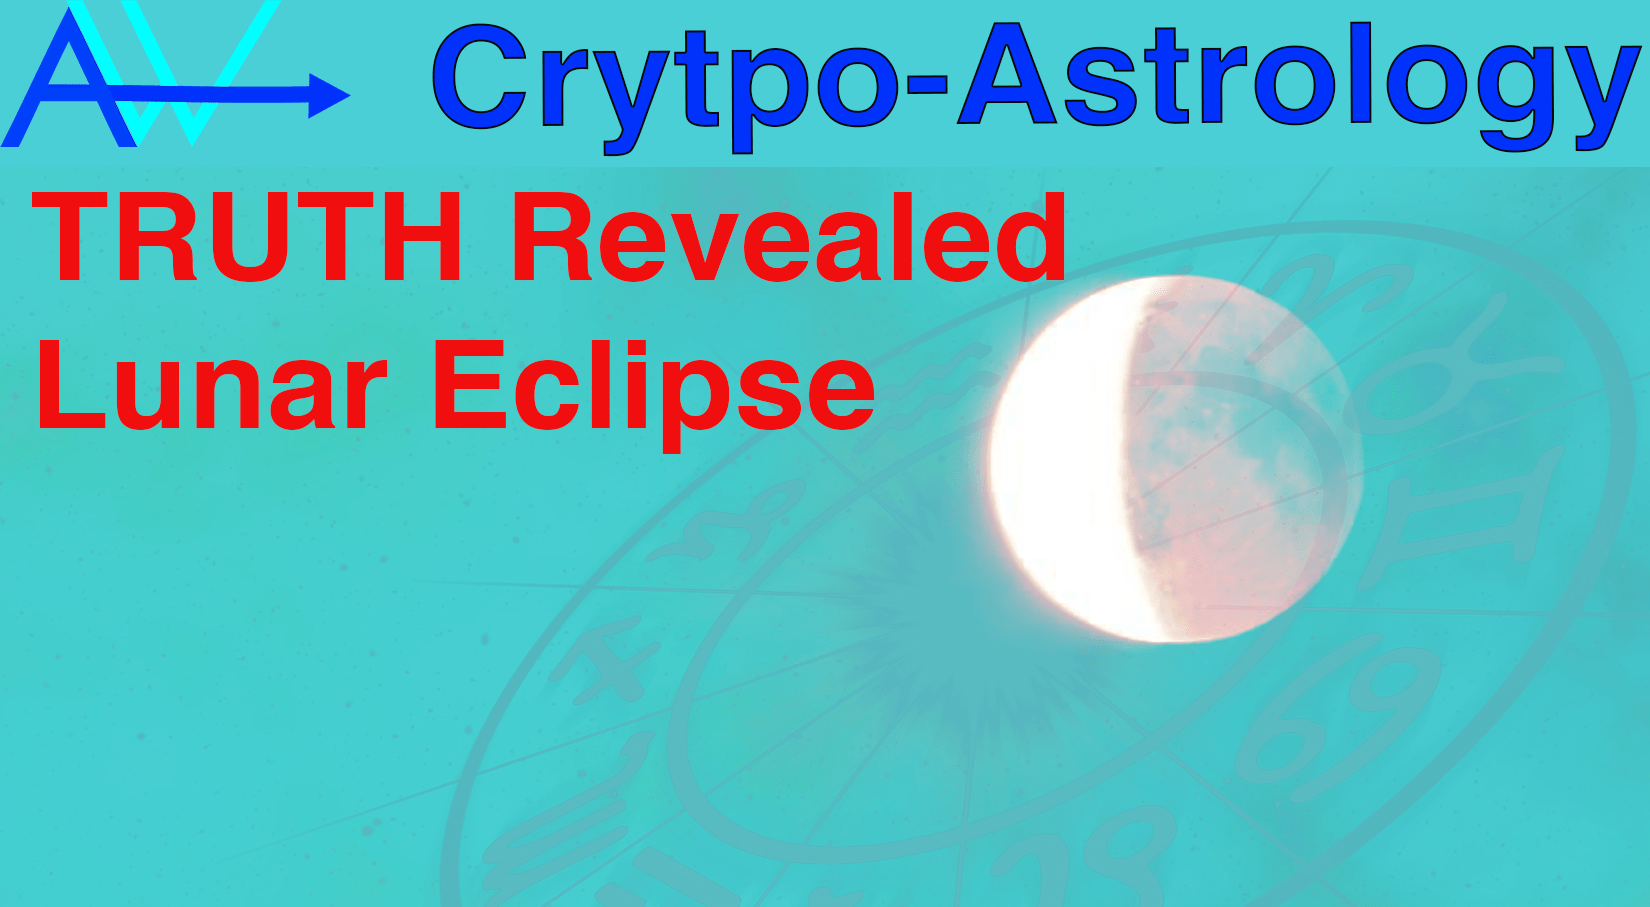 You are currently viewing Lunar Eclipse – SECRETS UNVEILED – CryptoAstrology<br><span style='color:#00adee;font-size:.8em'>Secrets Unveiled Lunar Eclipse </span>